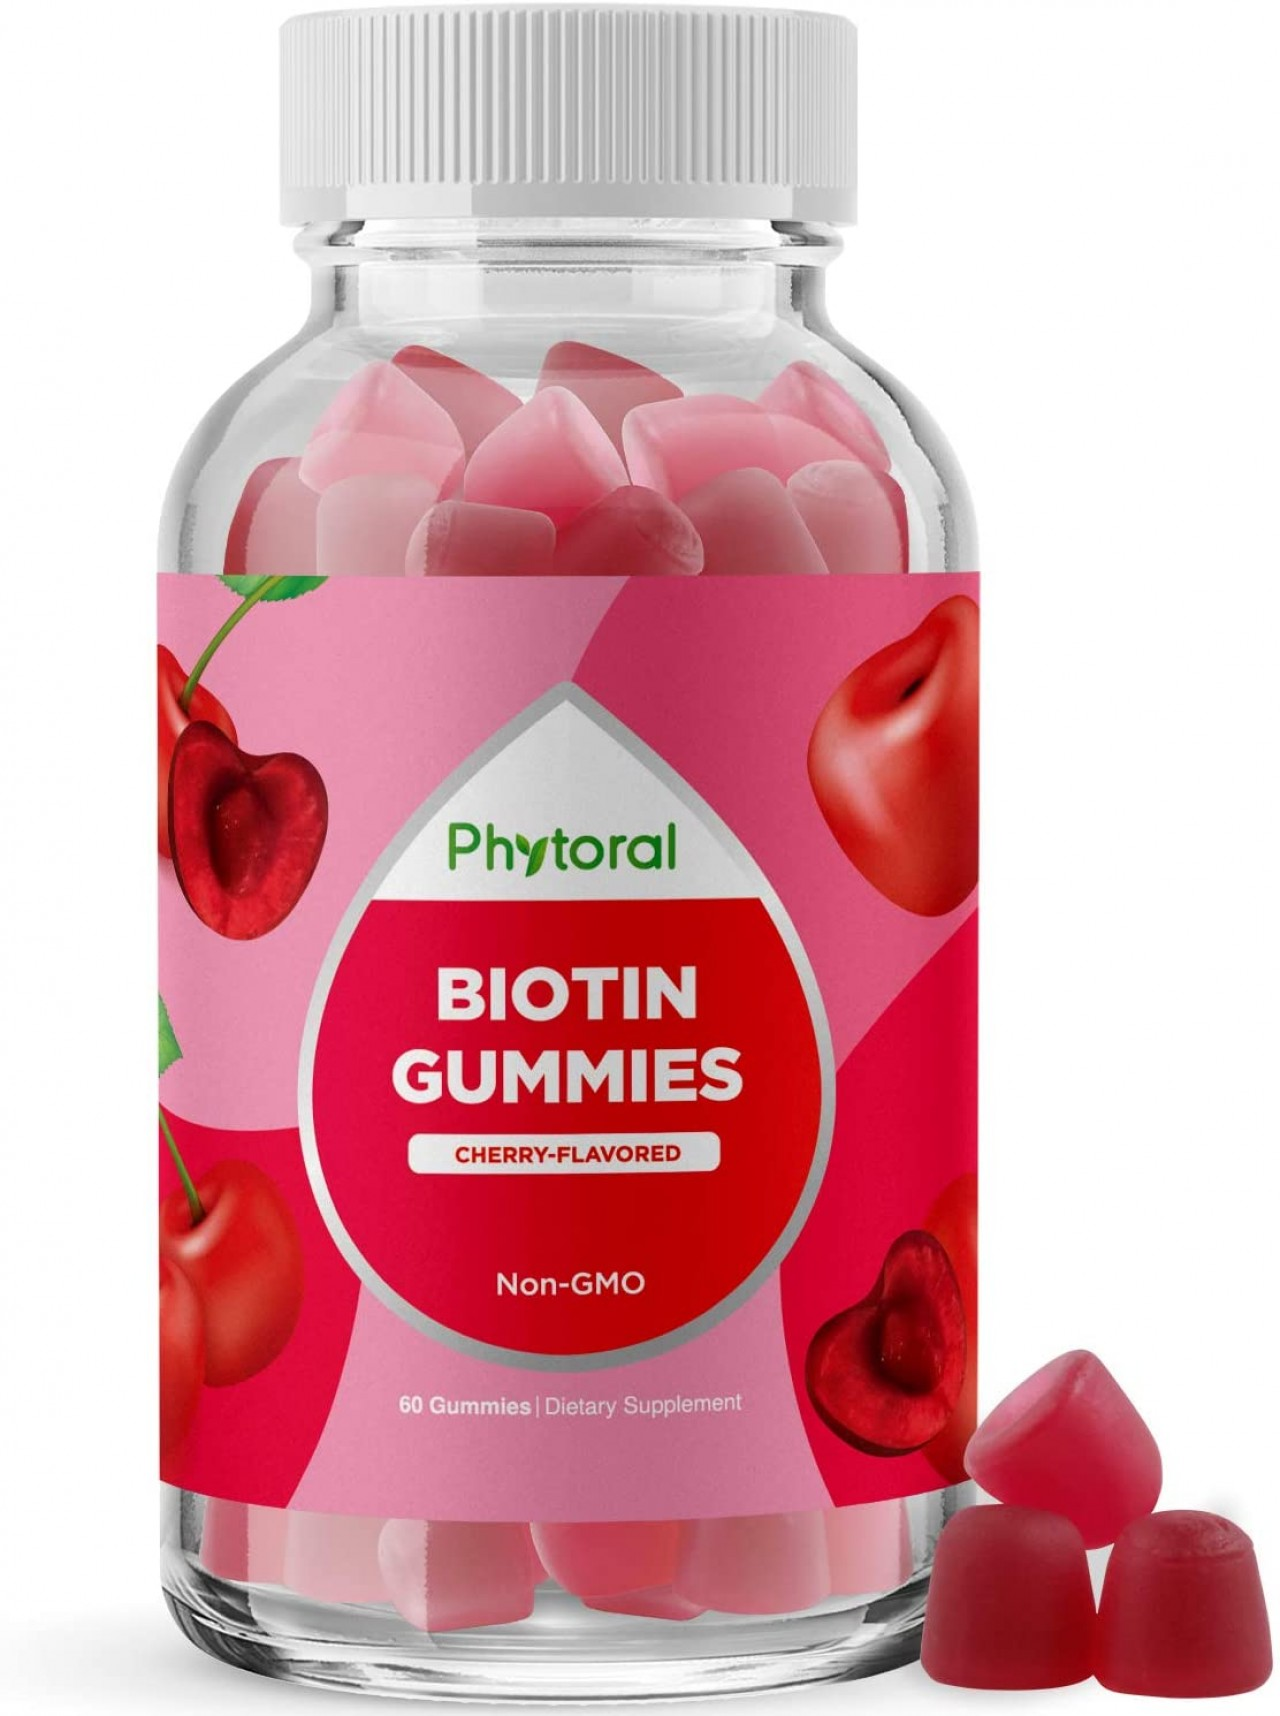 Biotin Gummies for Hair and Nail Growth - Biotin Gummies for Hair Growth Anti Aging Skin Care and Nail Care - Biotin 5000mcg Hair Skin and Nails Gummies Vitamins for Adults Beauty and Skin Care